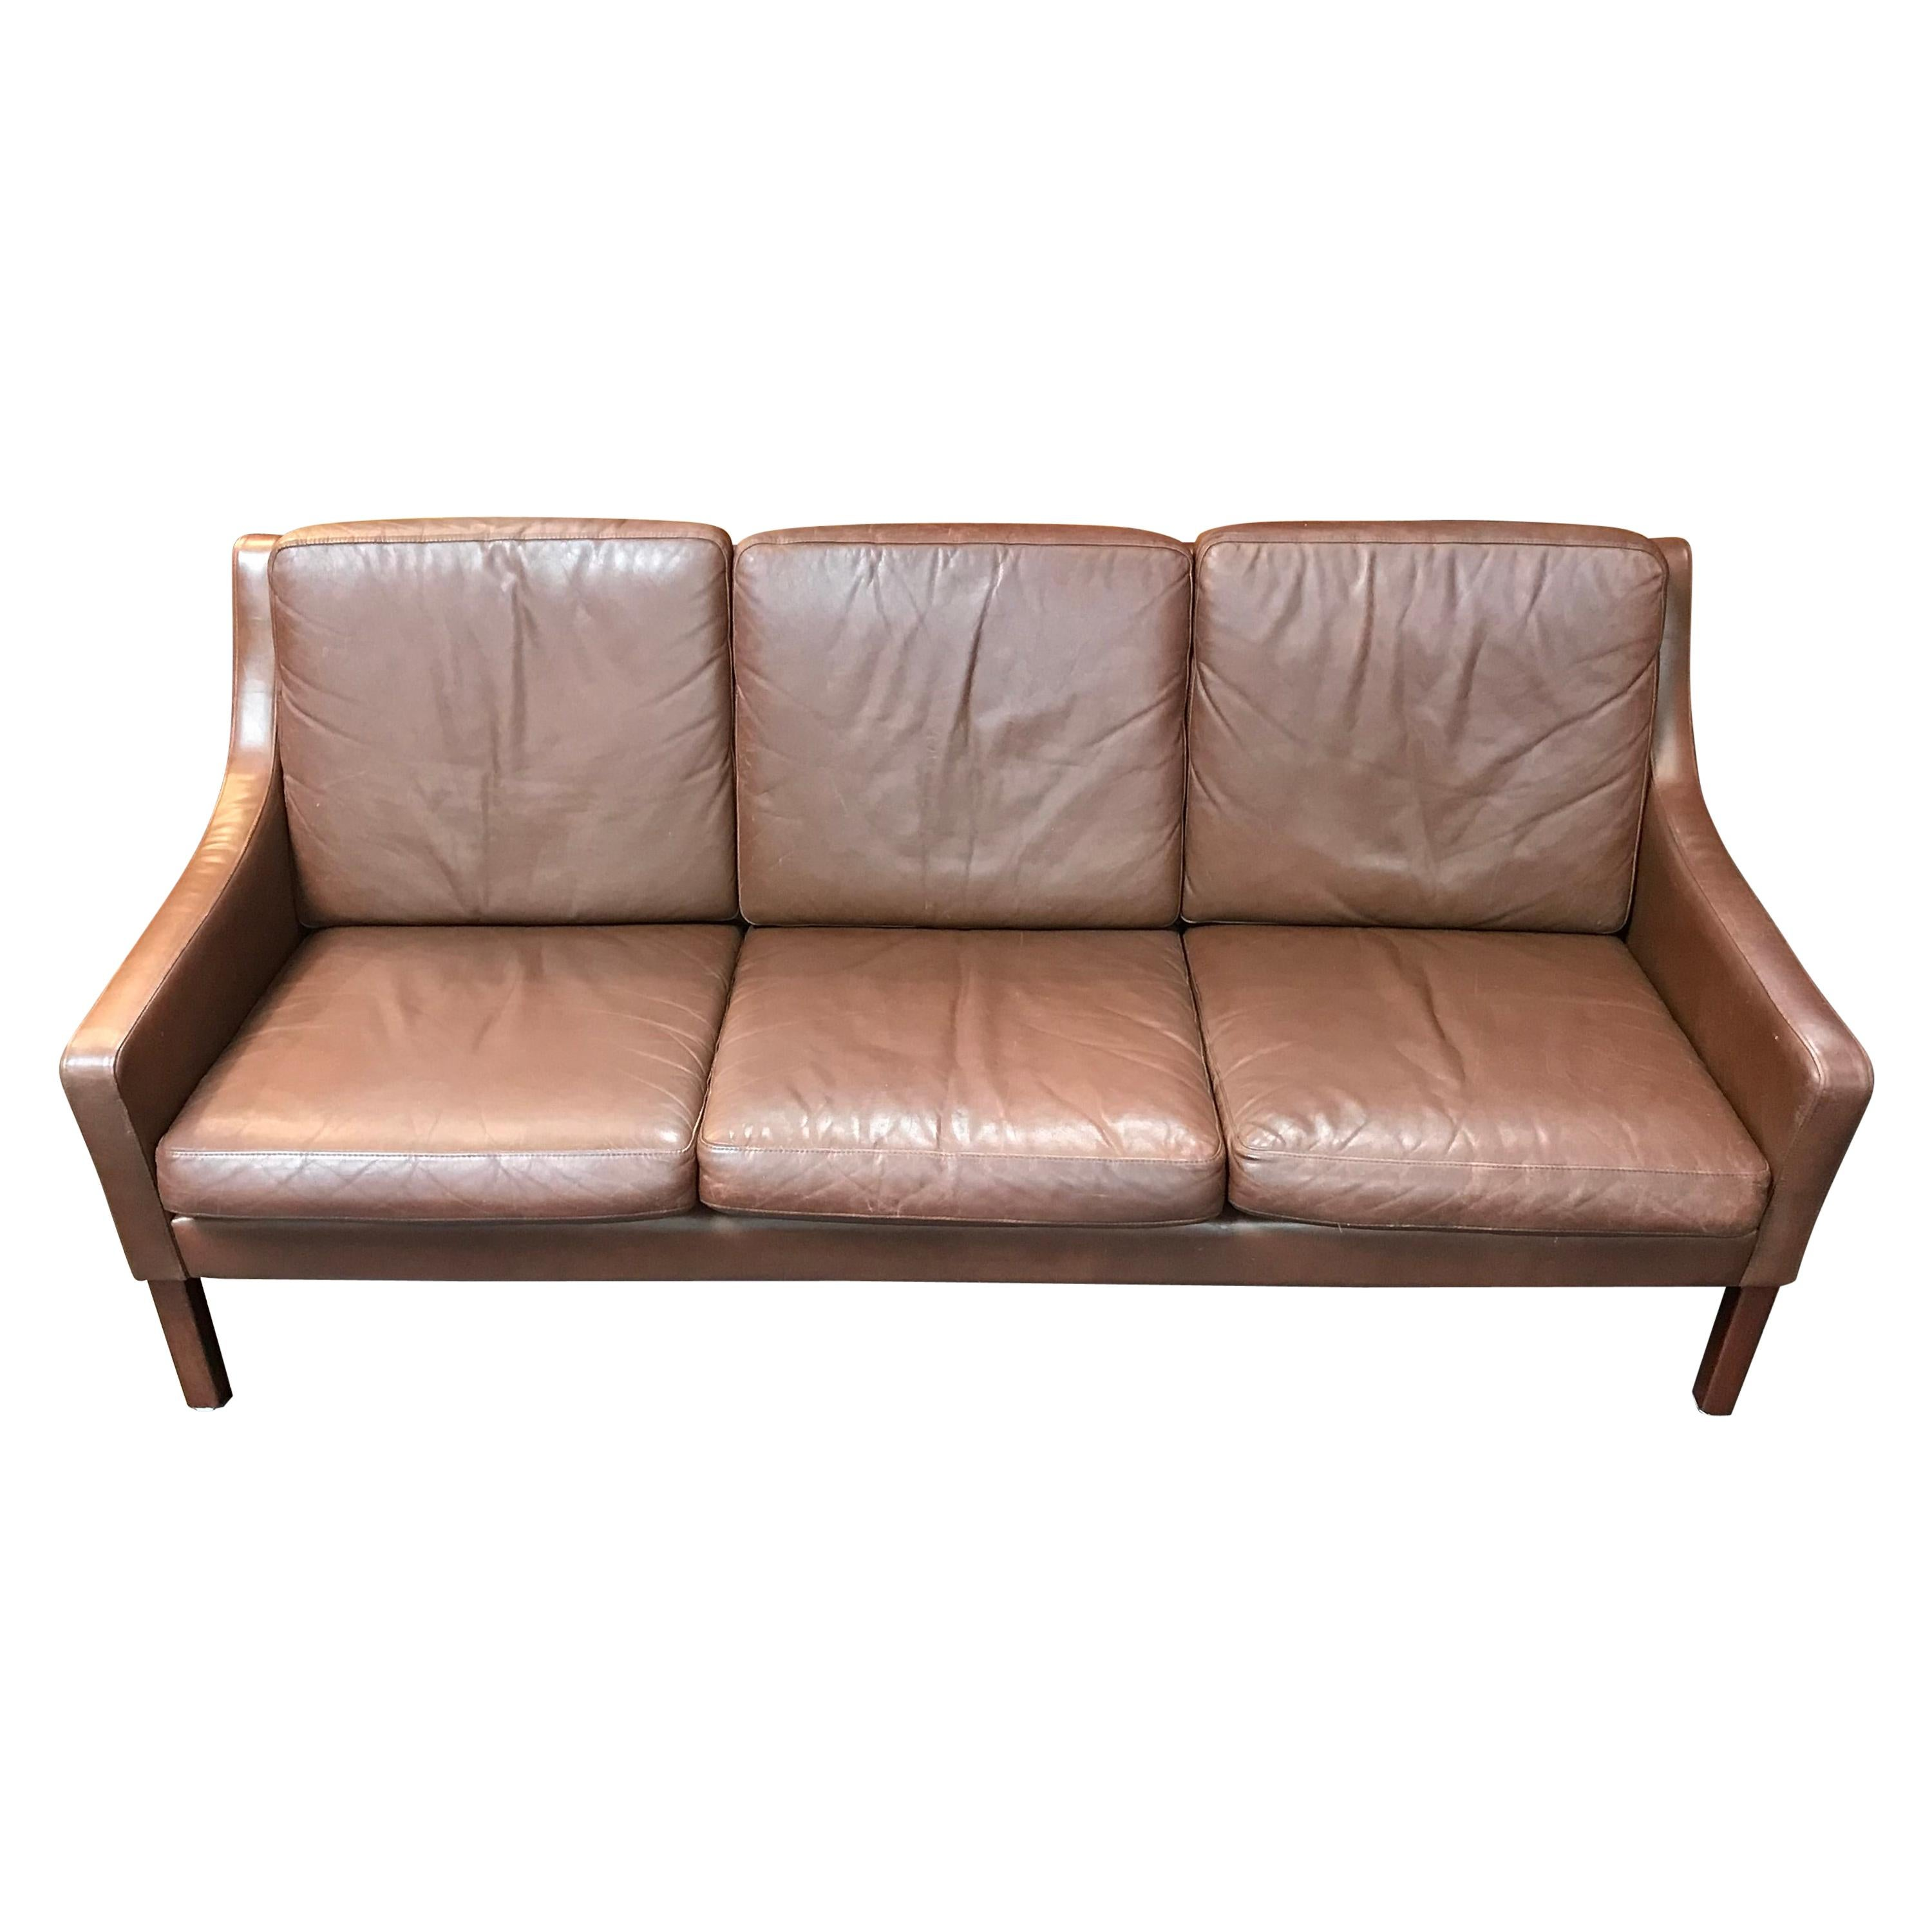 Danish Midcentury Borge Mogensen Style 3 Seat Sofa In Brown